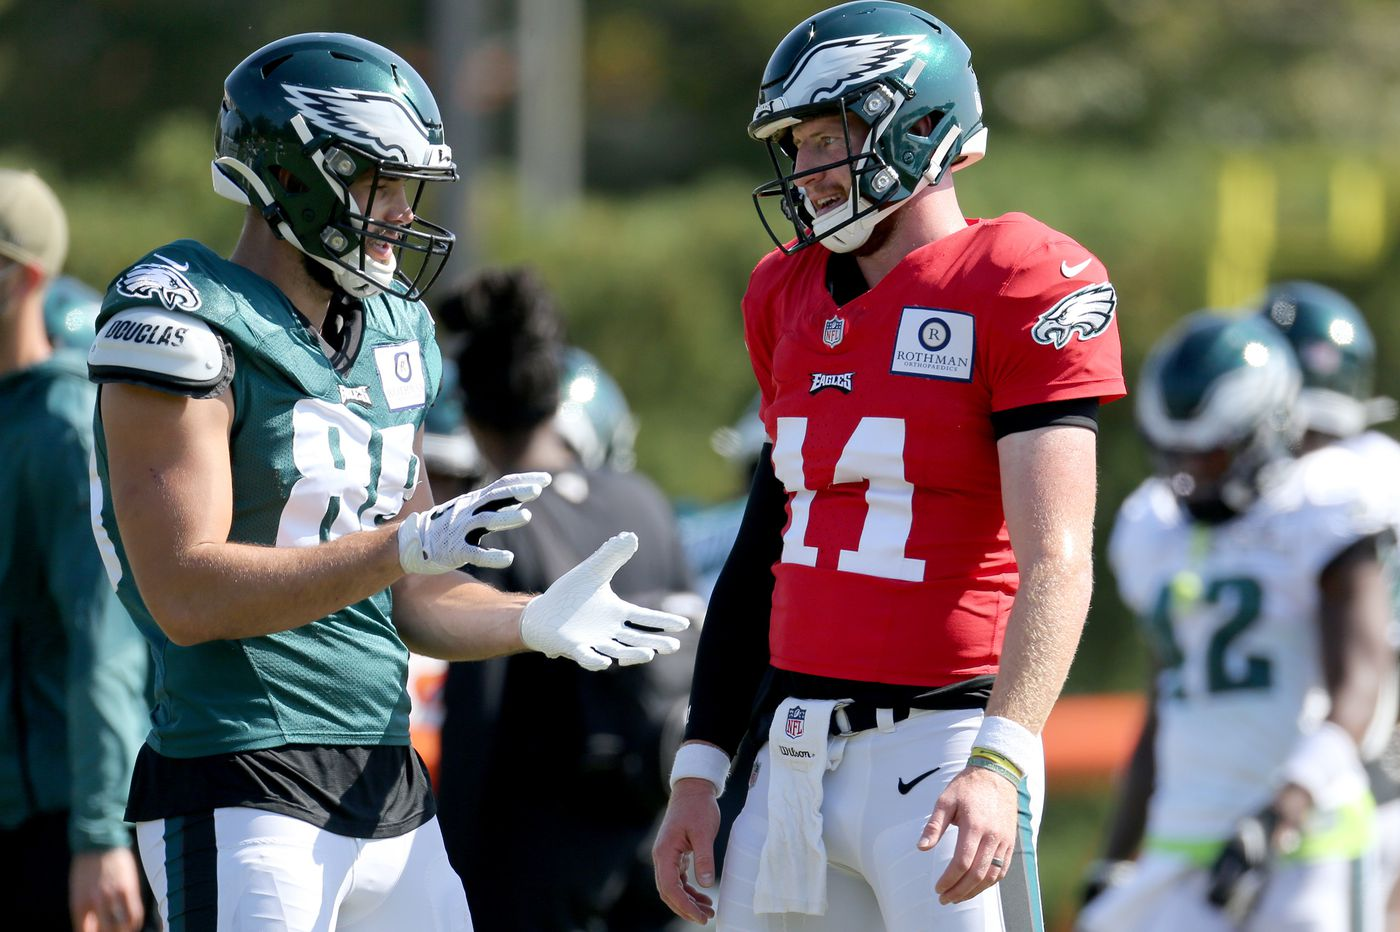 Carson Wentz projects calm, pledges that he and the Eagles will be better, but we don't get deep insights